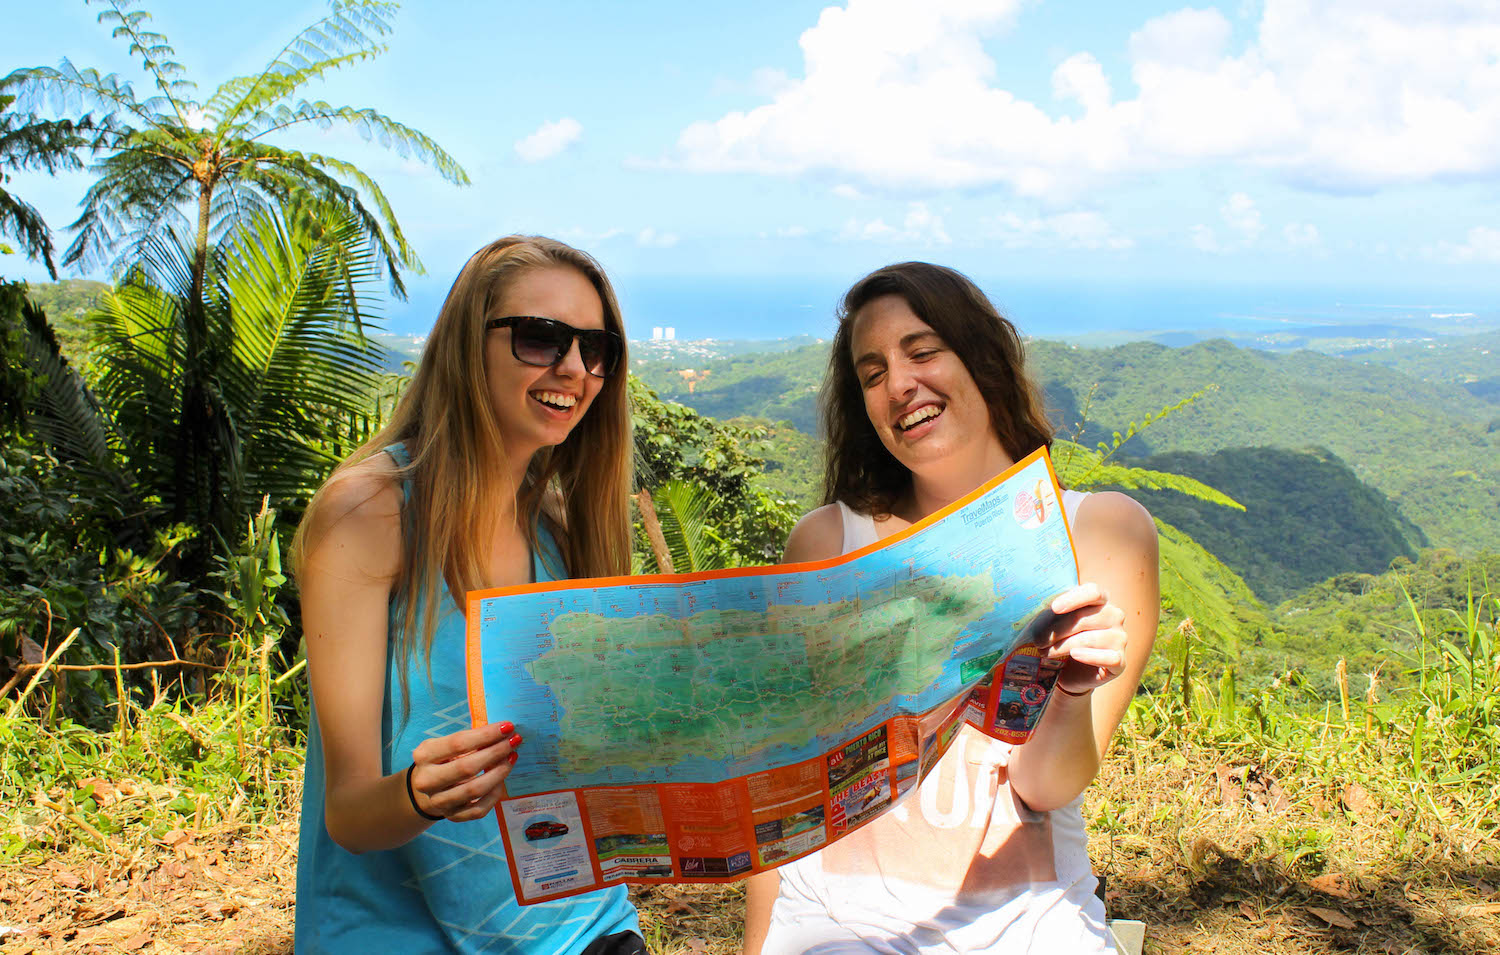 Puerto Rico Adventures - El Yunque Rainforest